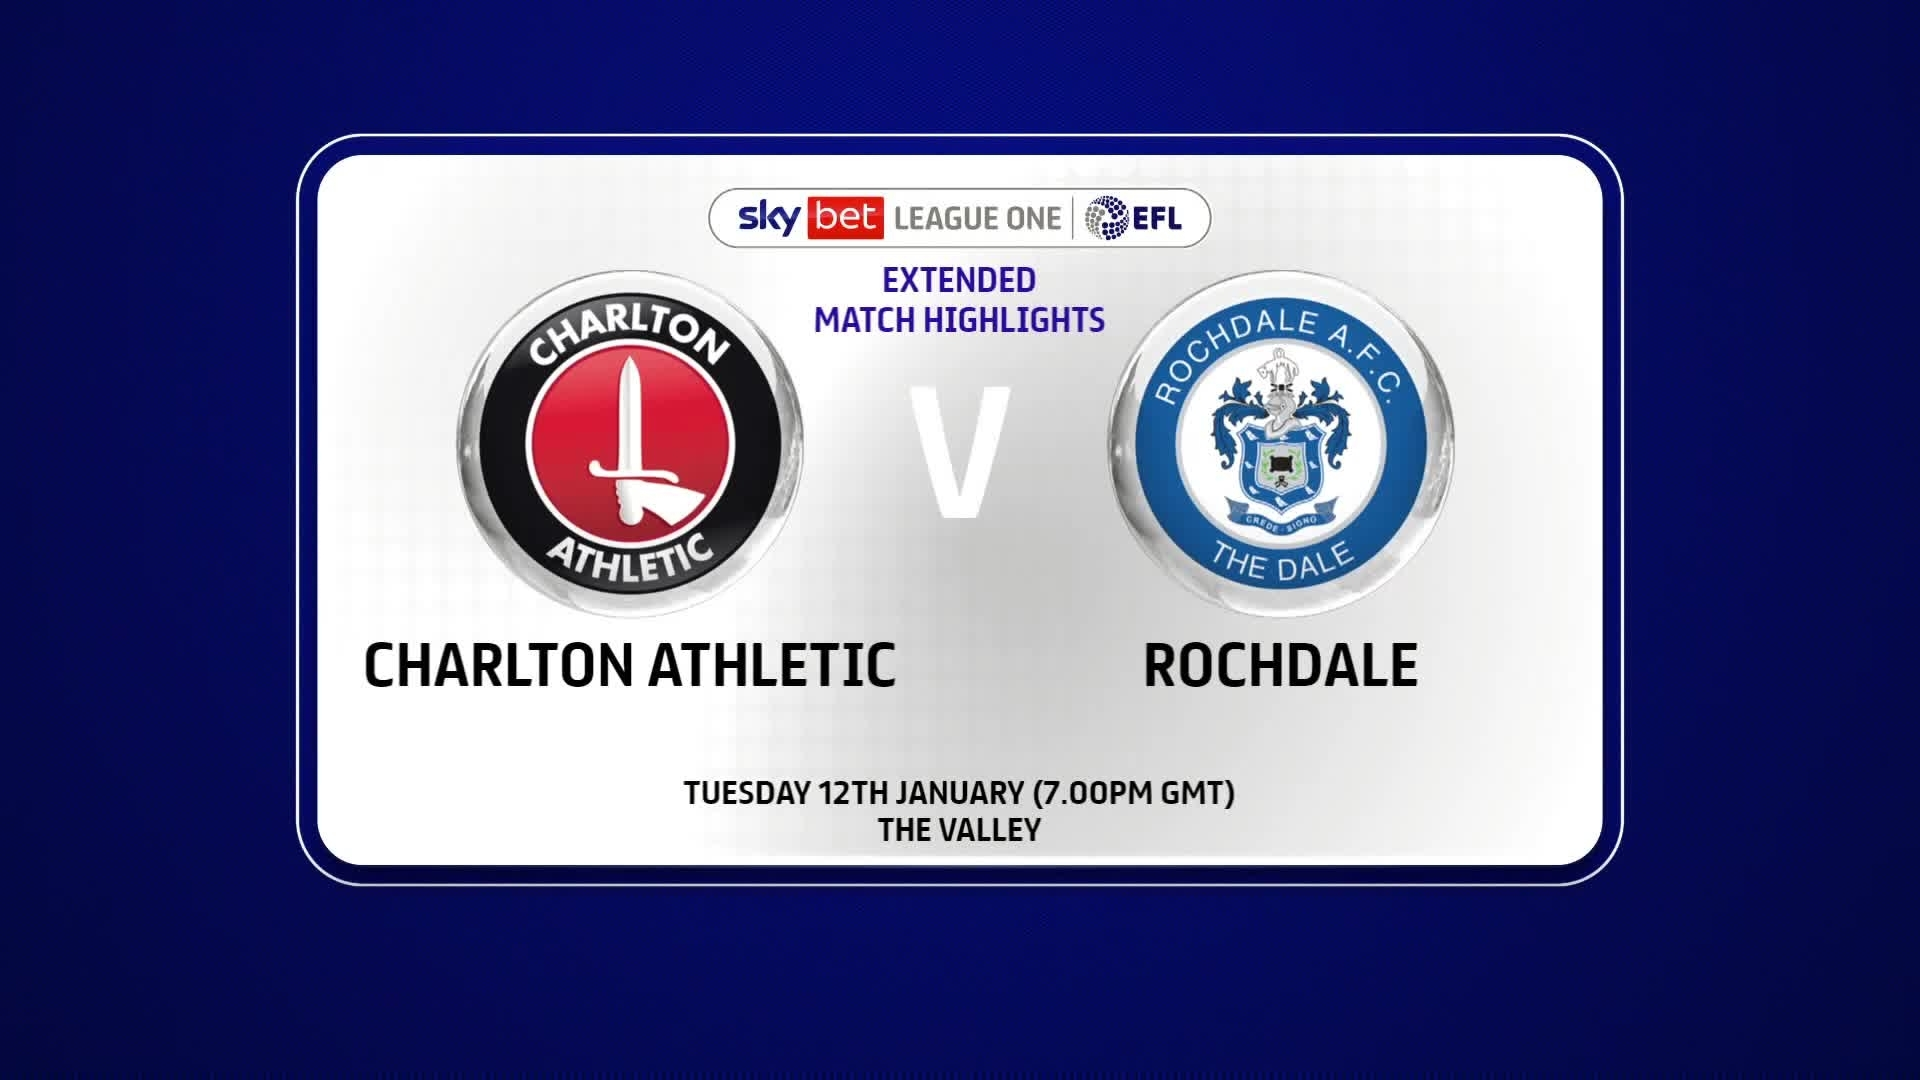 EXTENDED HIGHLIGHTS | Charlton 4 Rochdale 4 (January 2021)